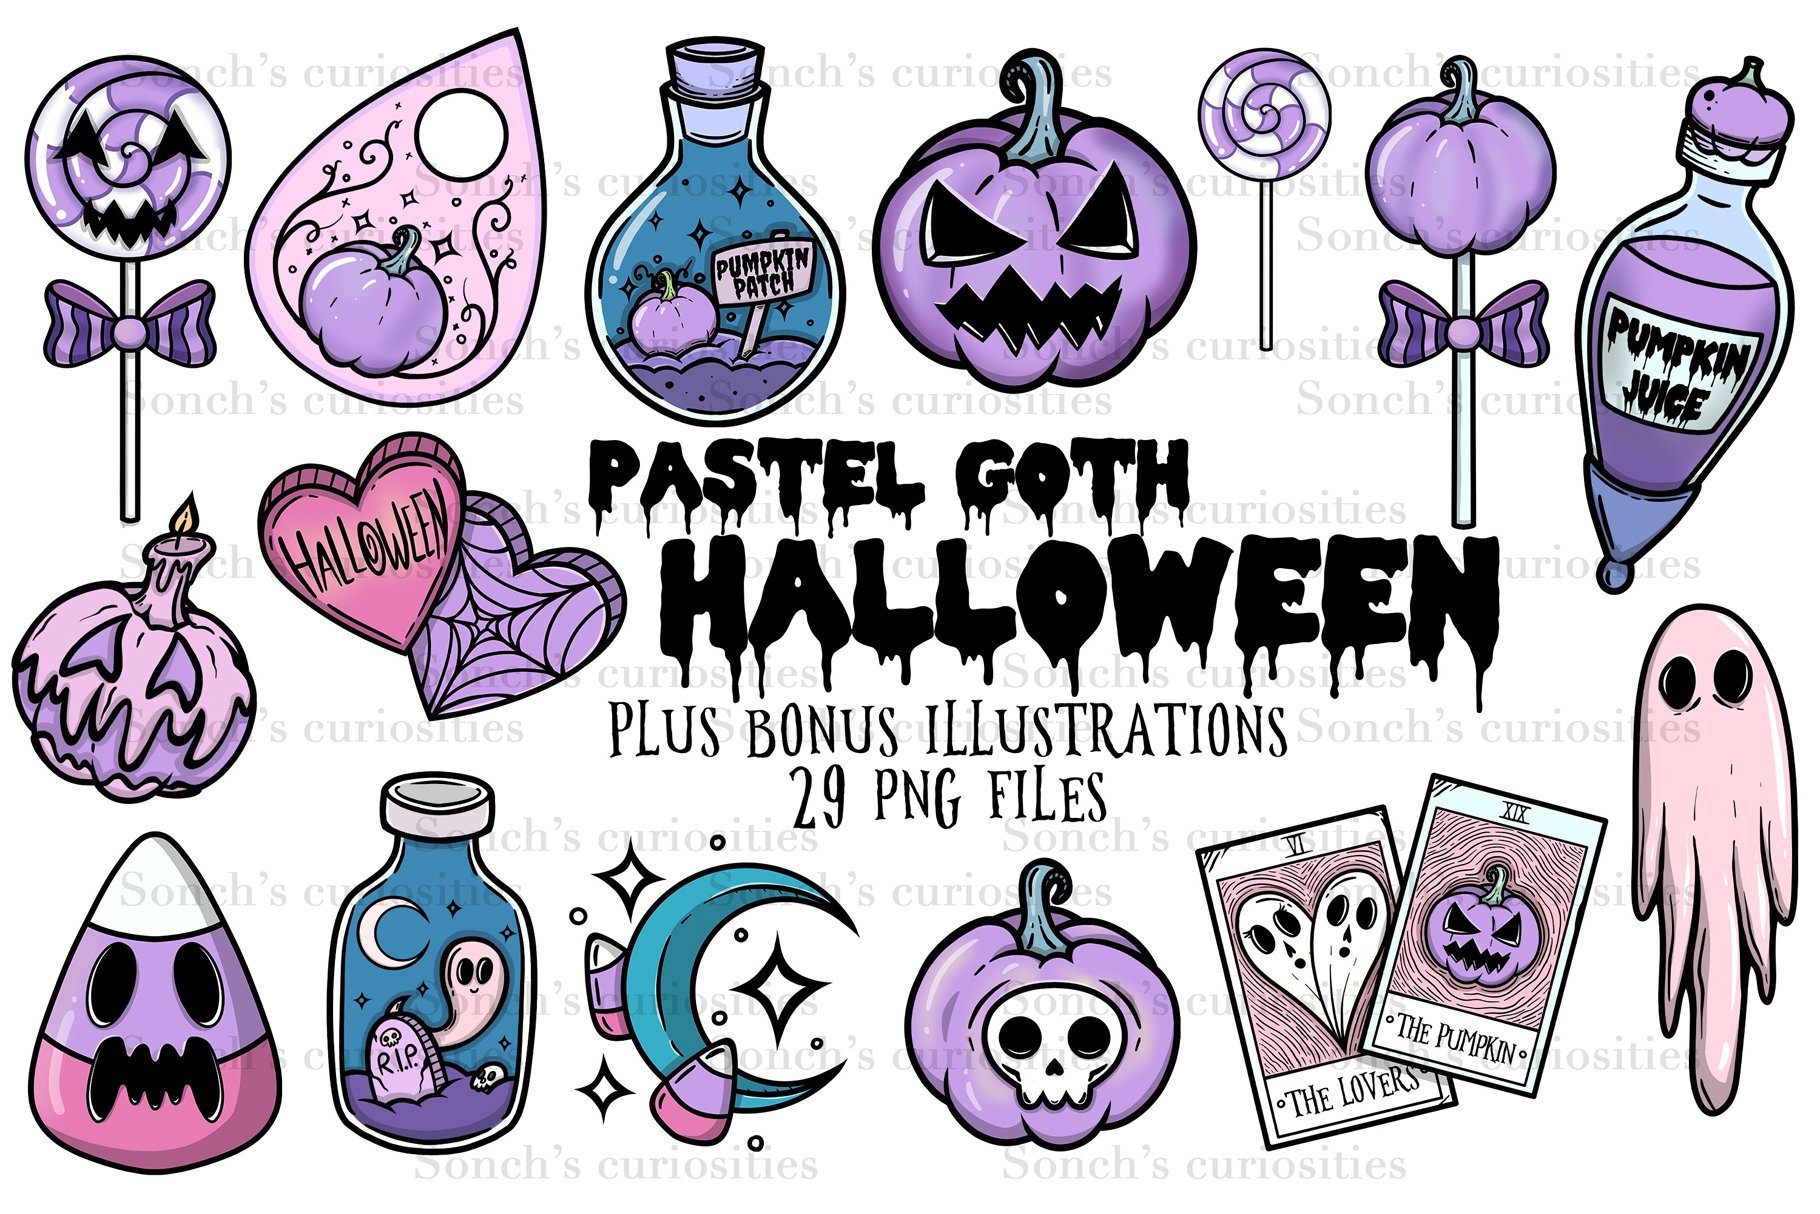 Pastel Goth Halloween - spooky clipart, large PNG files